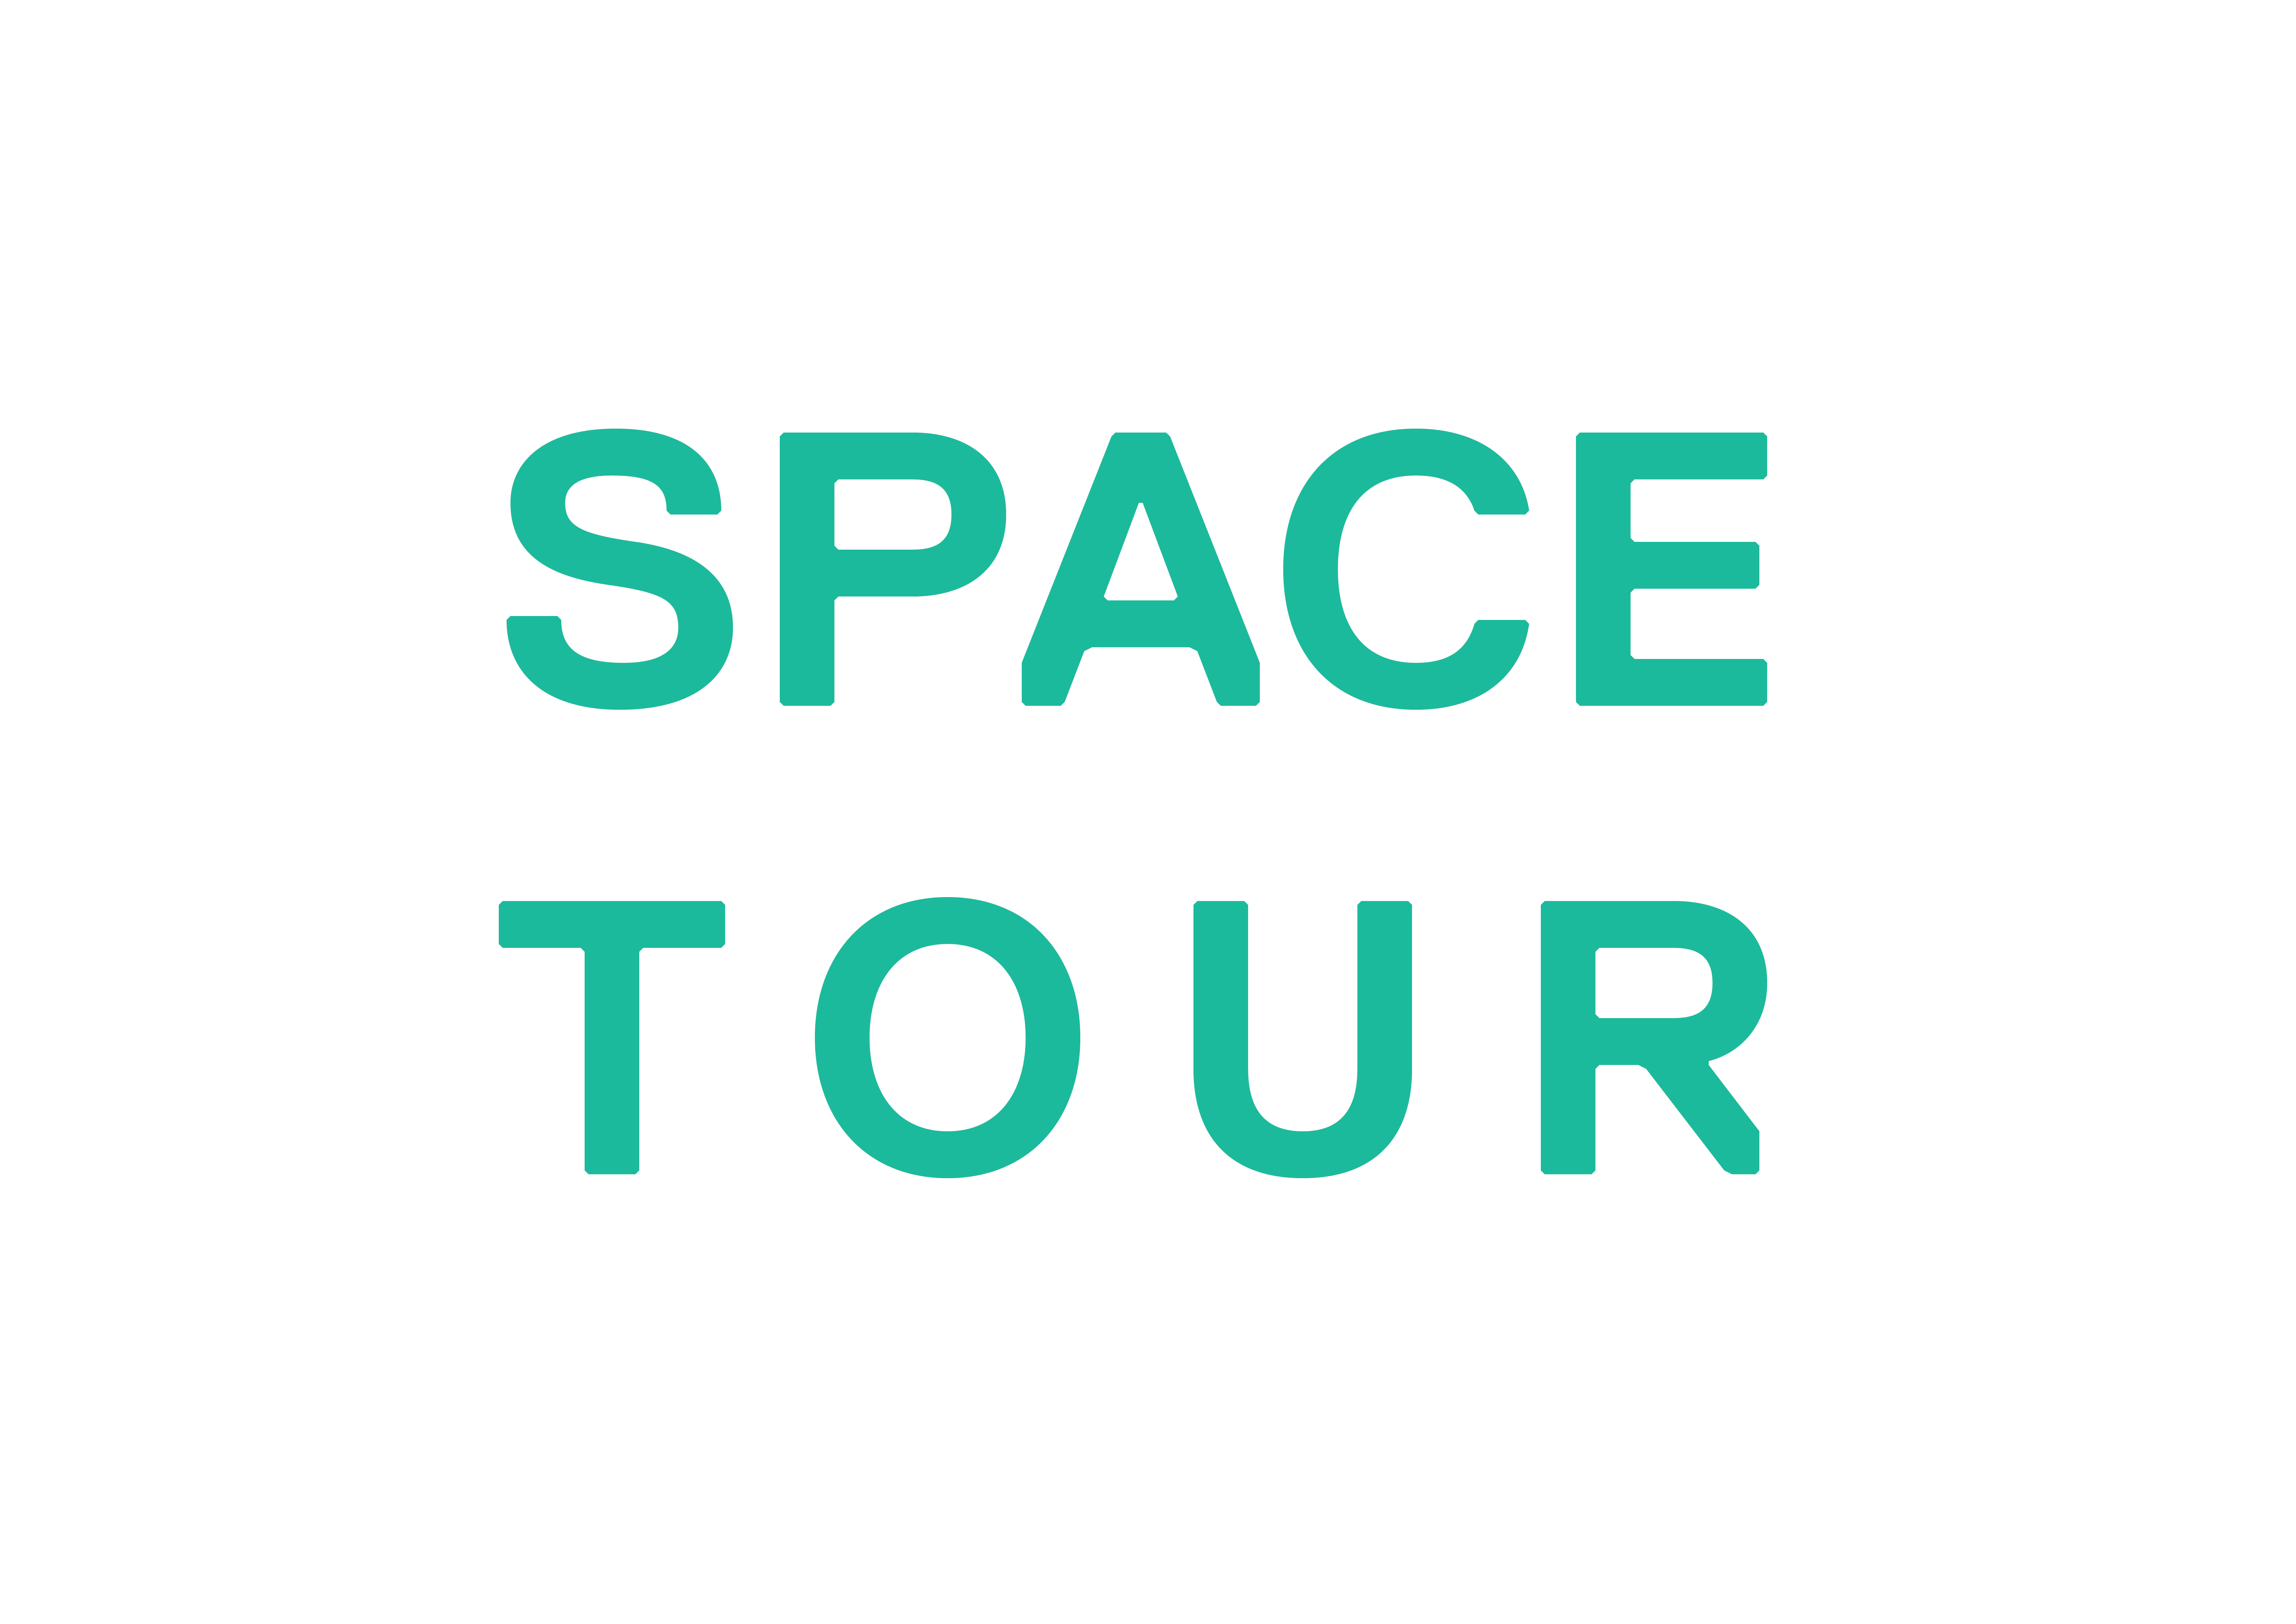 Visit our Space